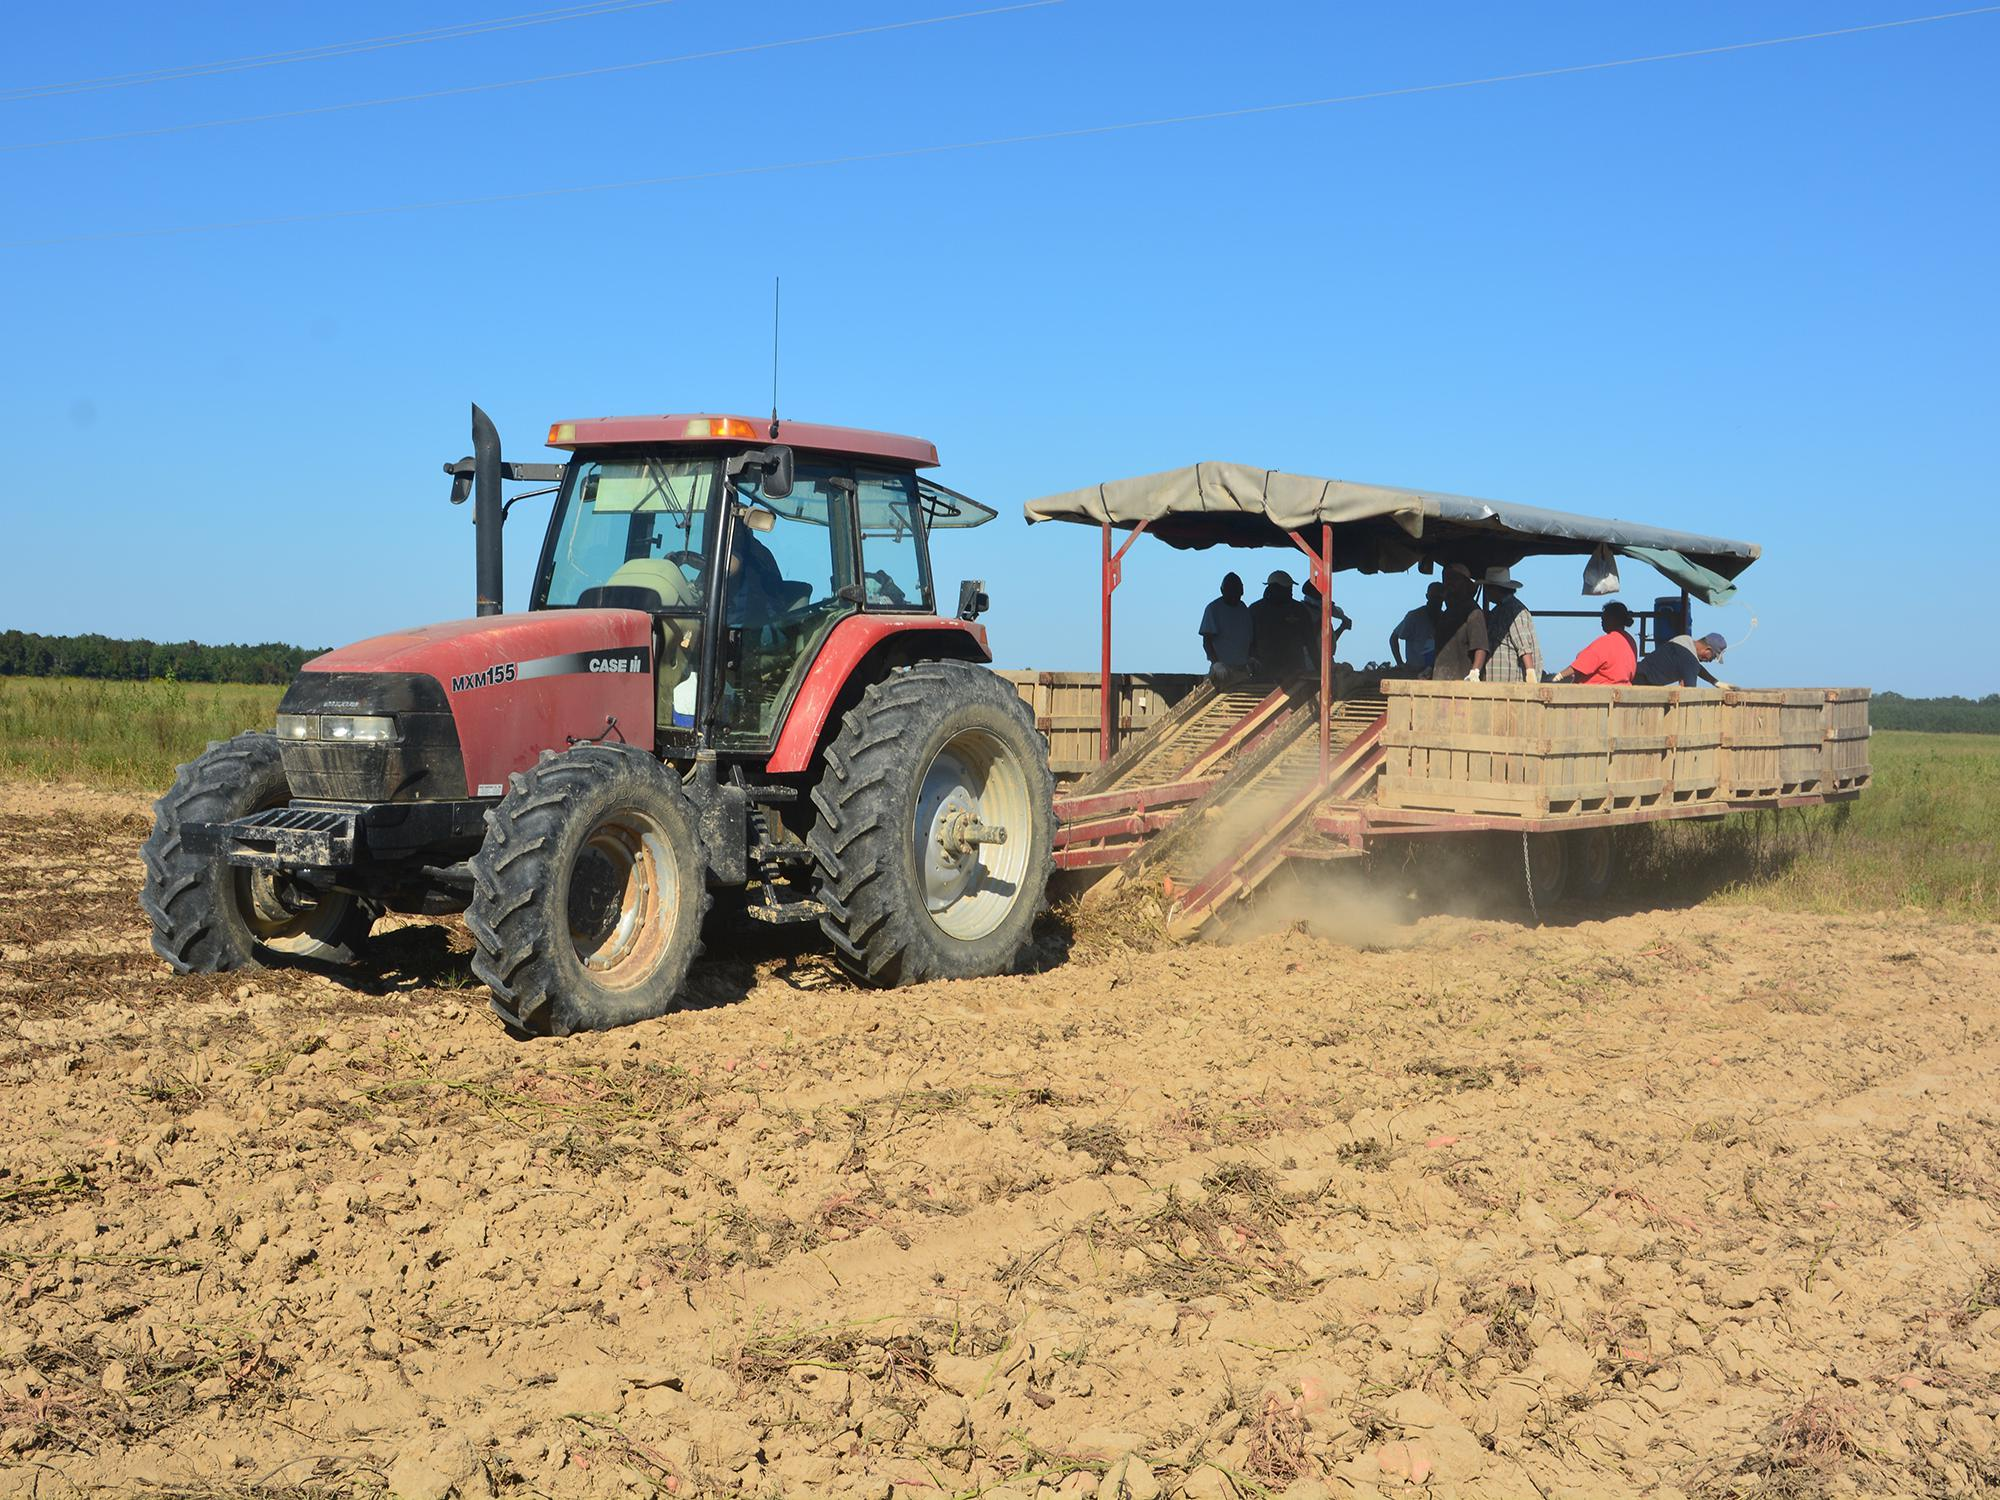 This tractor creeps across a Vardaman, Mississippi, field Sept. 20, 2016, digging sweet potatoes while workers sort them based on size and quality. (Photo by MSU Extension Service/Linda Breazeale)